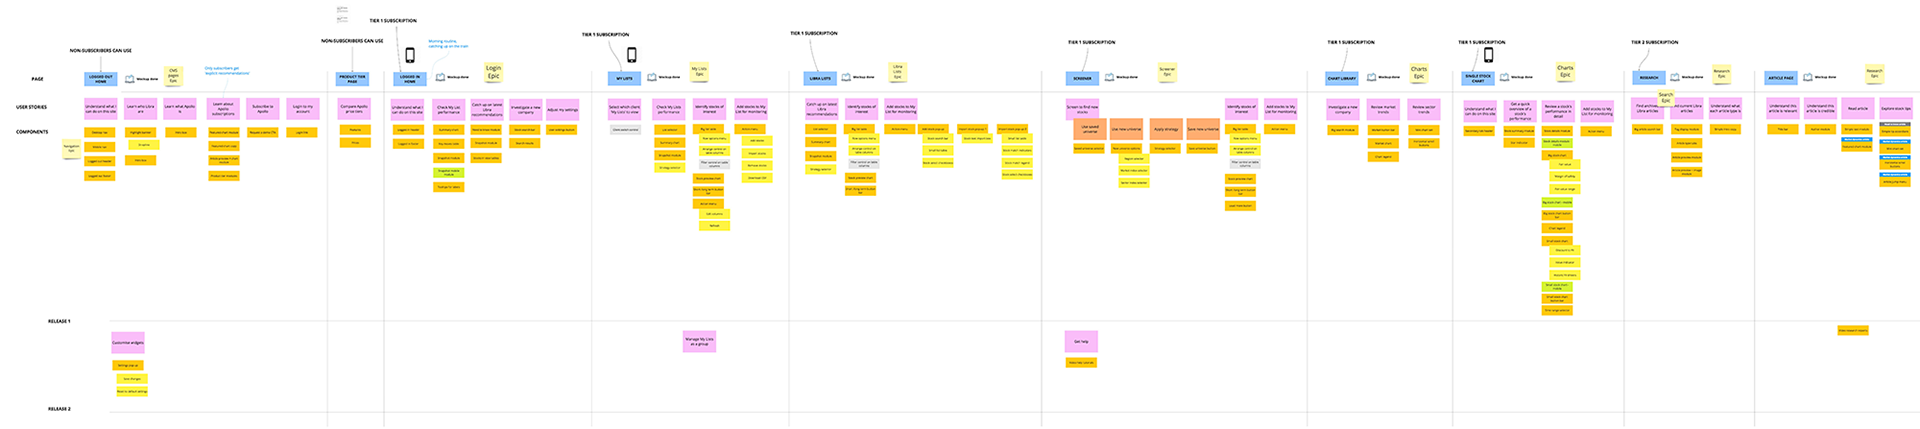 We co-created a user story map using Realtimeboard, describing user journeys through the platform, prioritising use scenarios and mapping out features. We noted important contextual information, such as which areas were more likely to be used on mobile and which on large screens in an office environment.